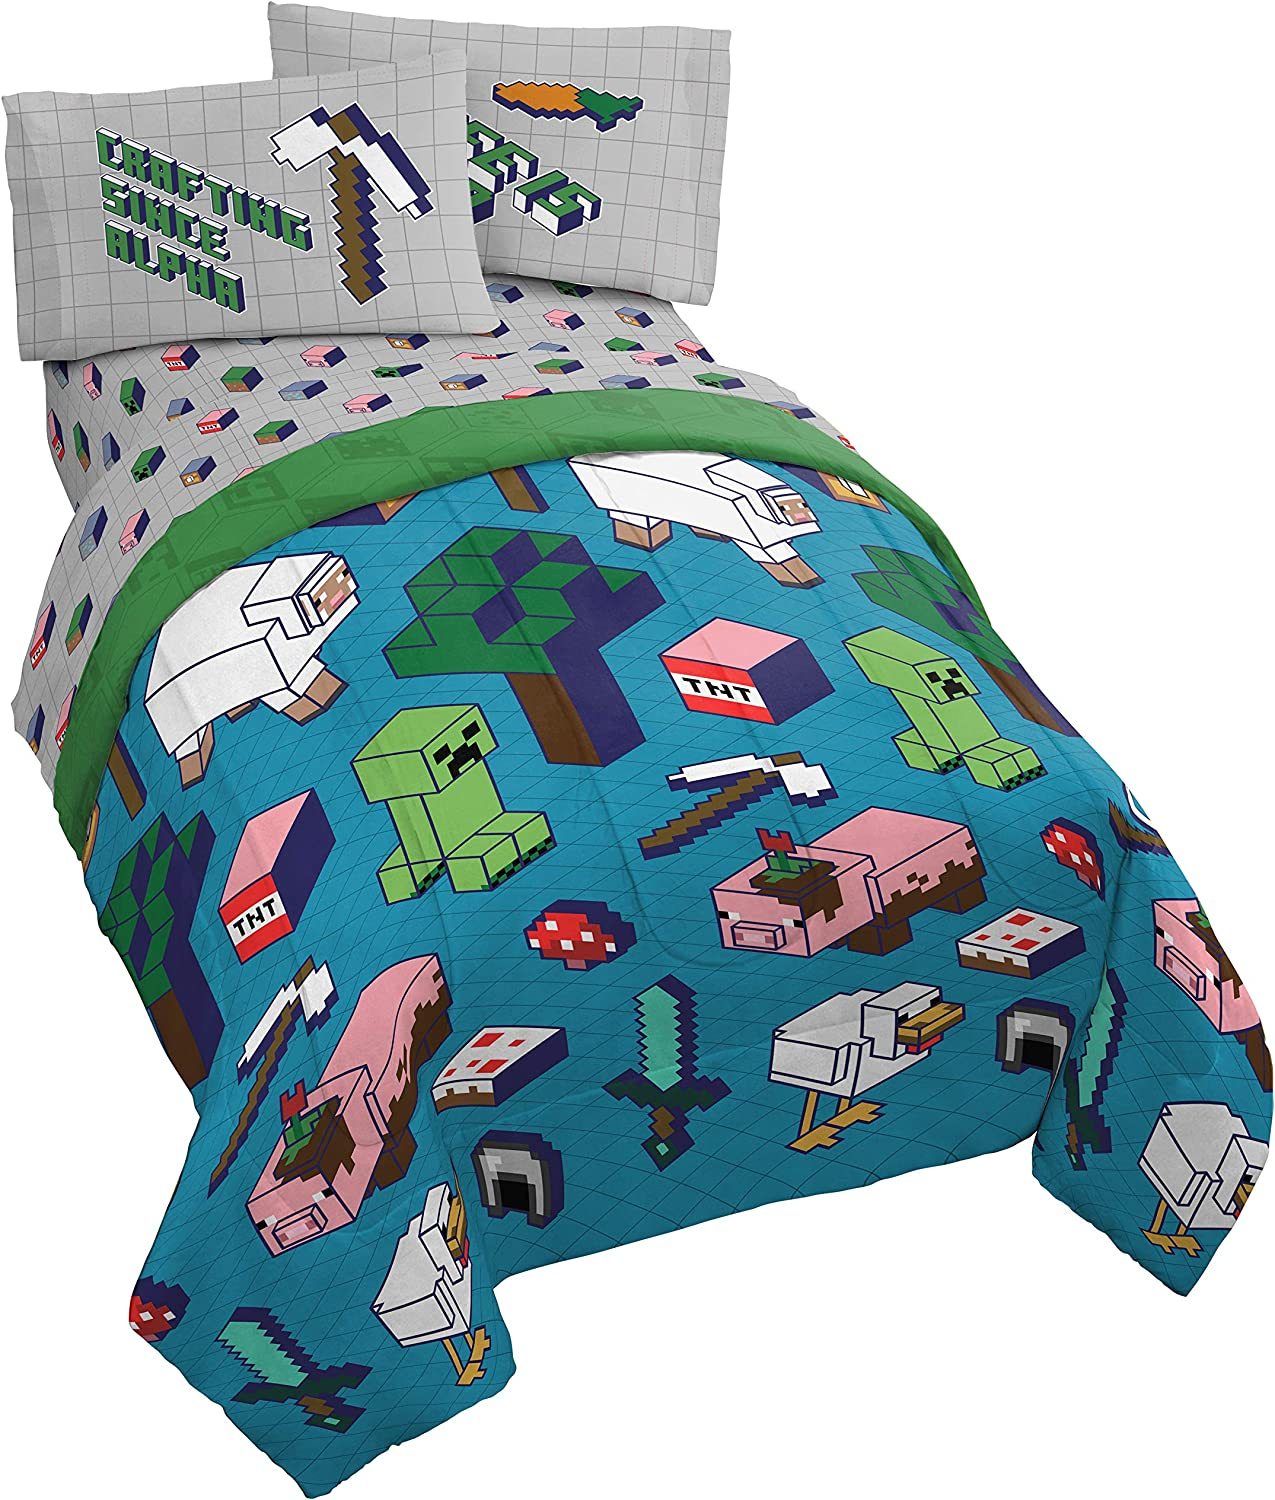 Minecraft Genda Iso Animals 11 Piece Full Bed Set - Includes Reversible  Comforter & Sheet Set - Bedding Features Creeper - Super Soft Fade  Resistant